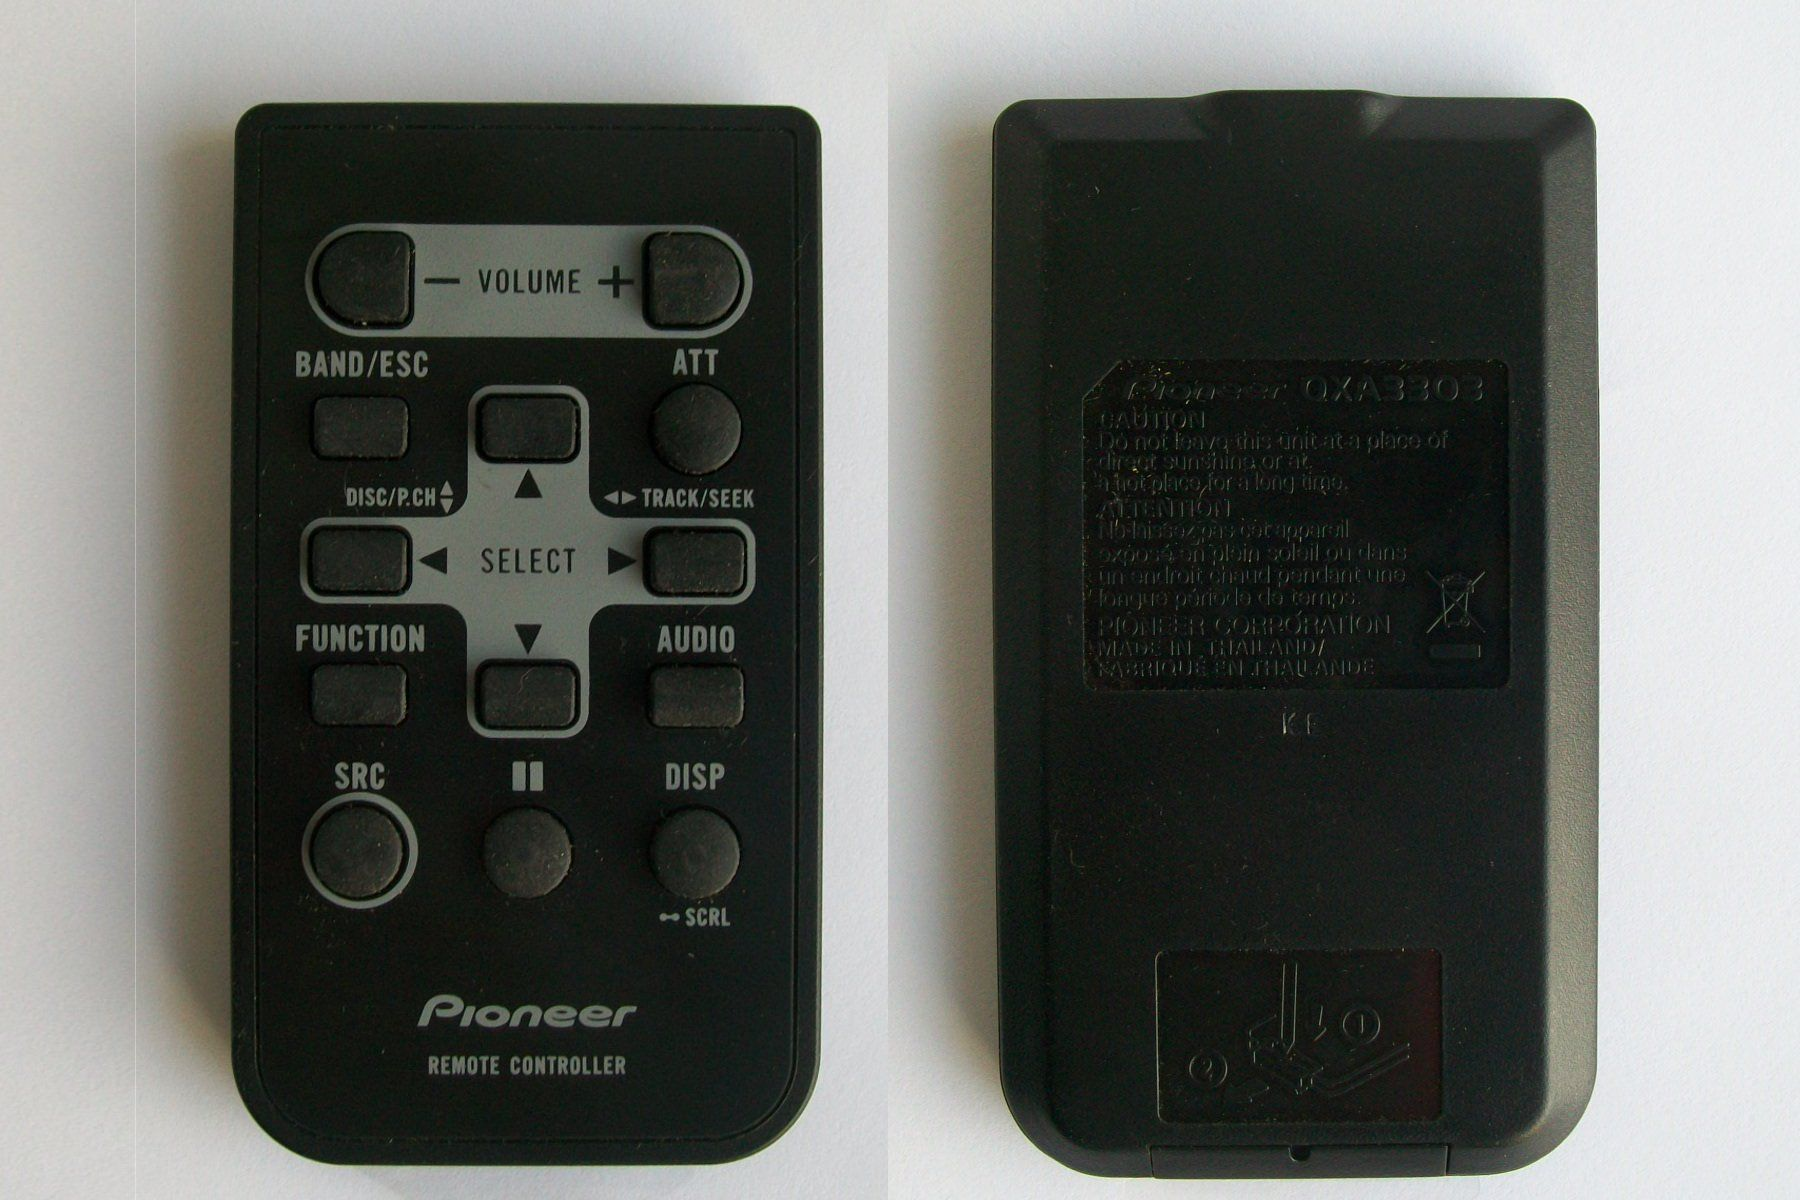 a02d903ef852edaf8717a9afcc4583ed pioneer qxa3303 remote control for car radio receiver cd player Power Acoustik 710 at soozxer.org